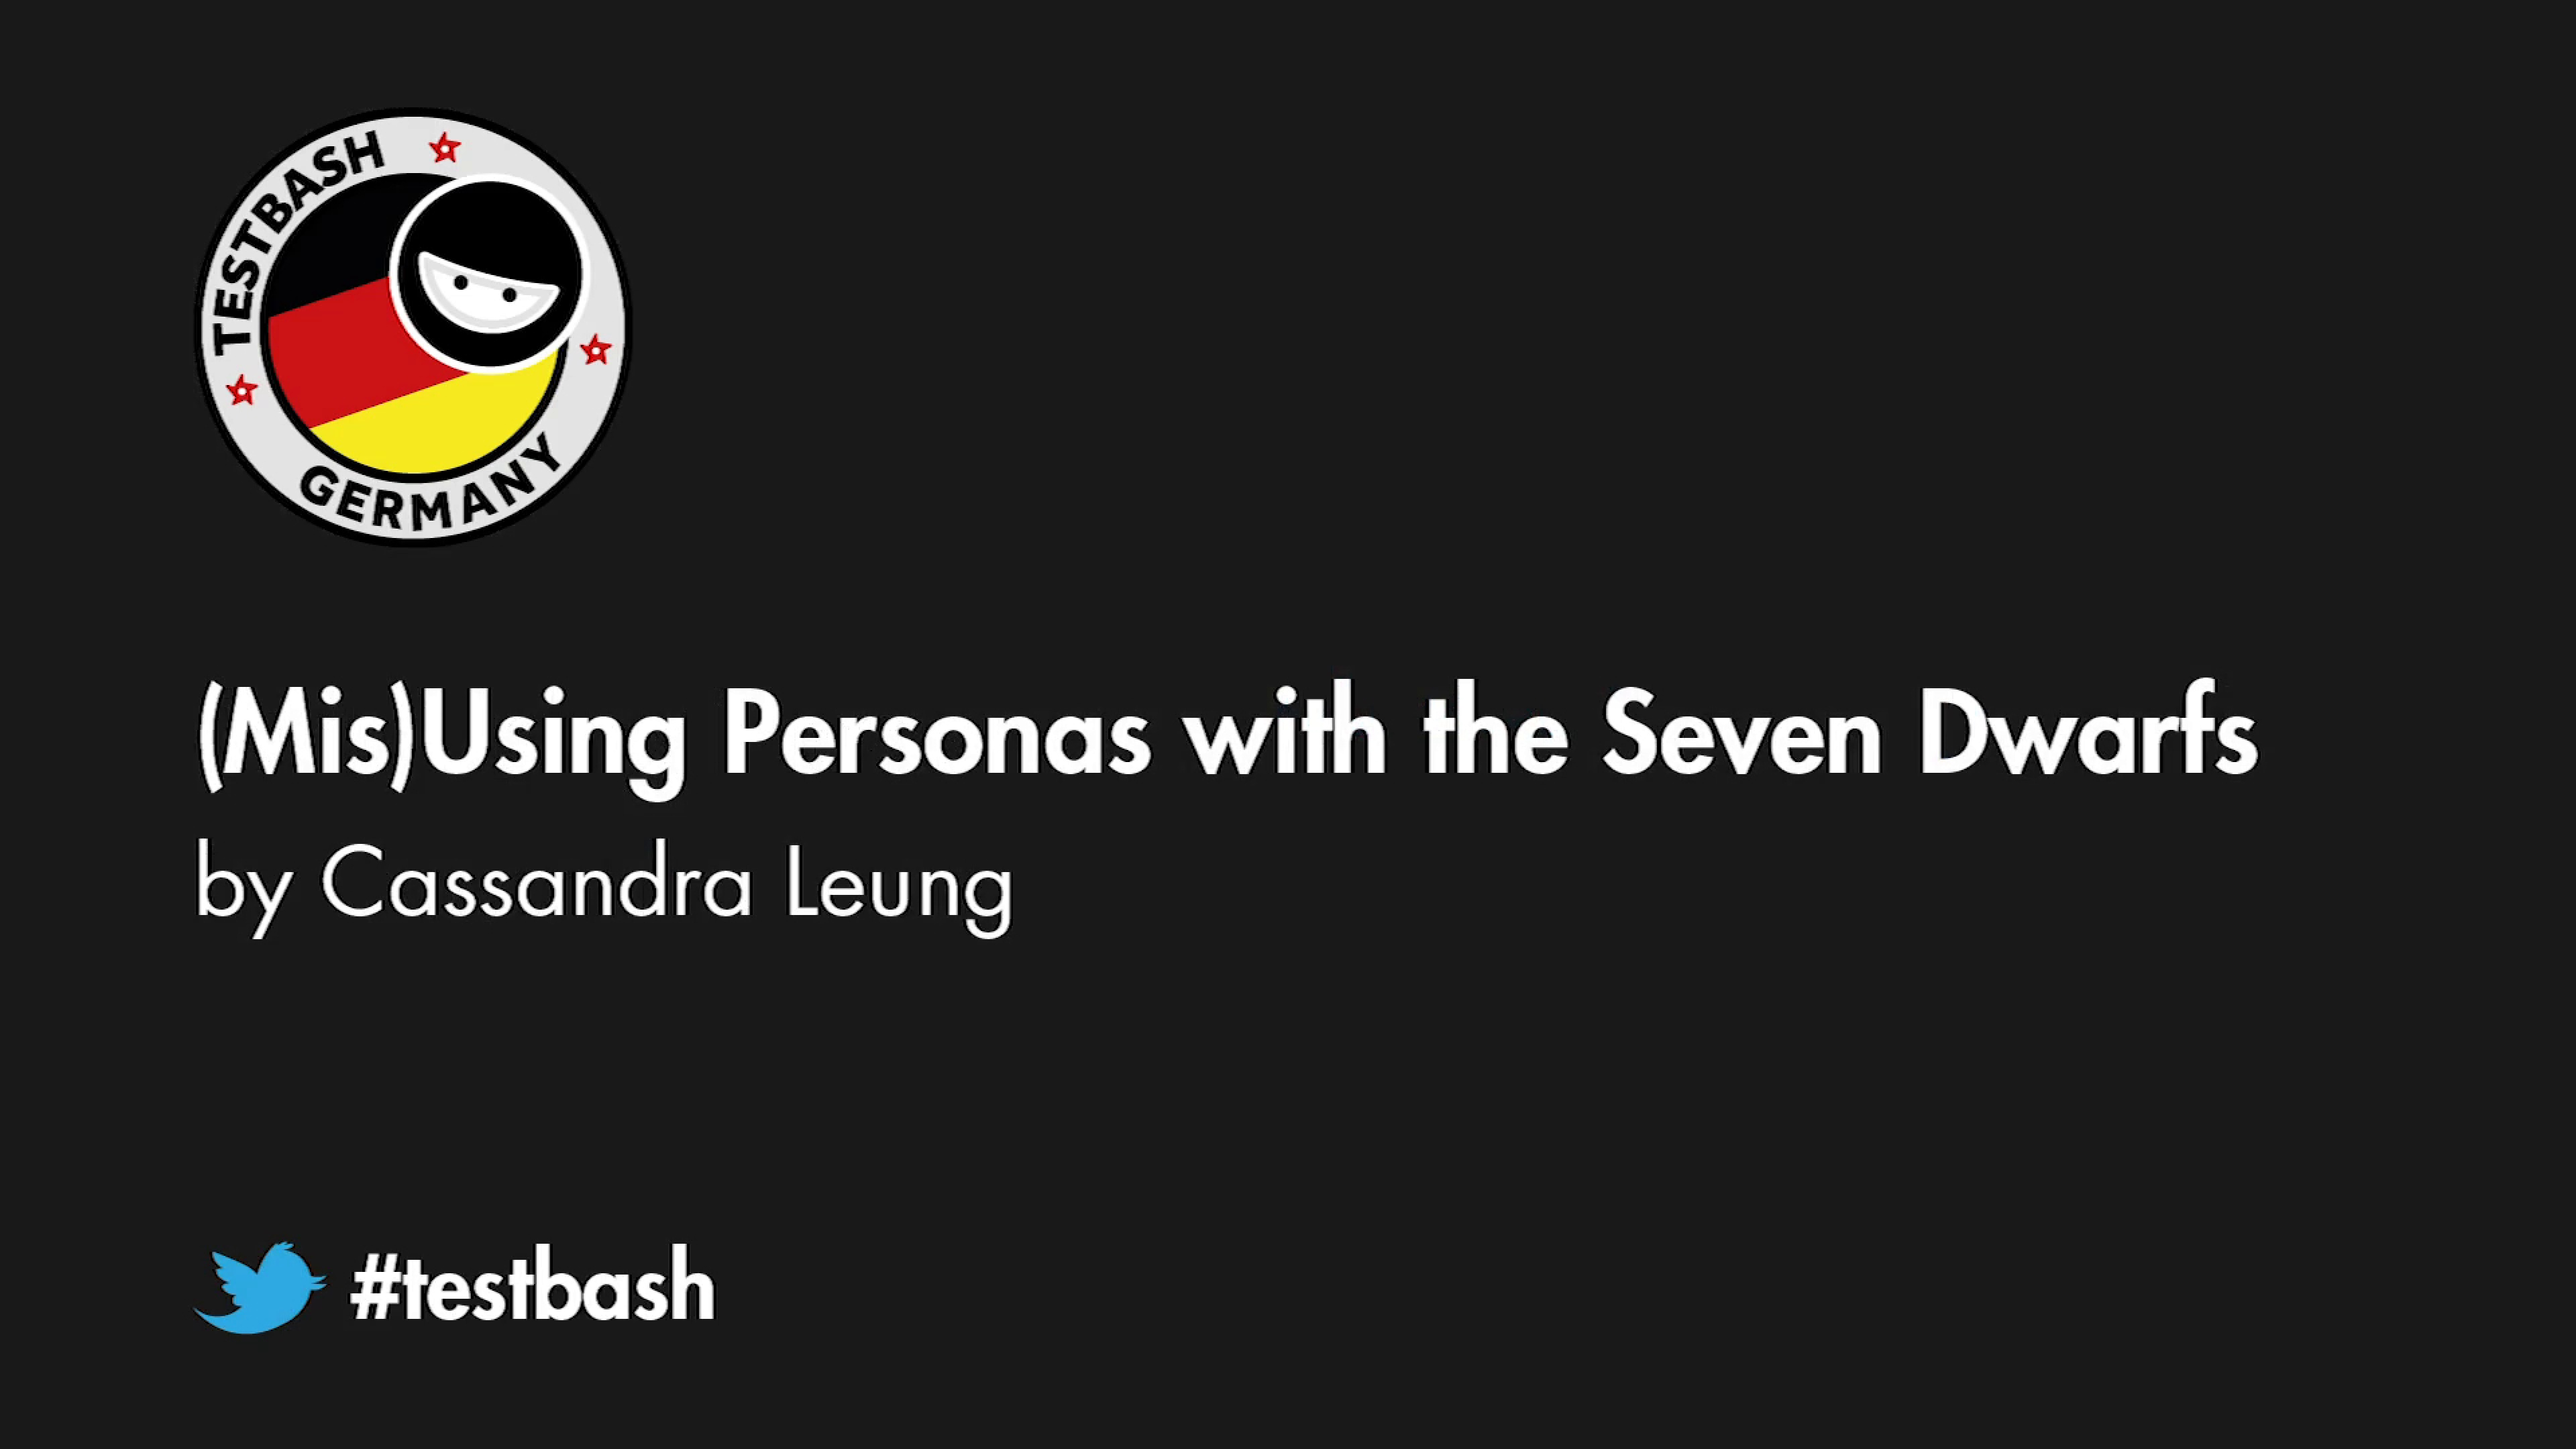 (Mis)Using Personas with the Seven Dwarfs - Cassandra H. Leung